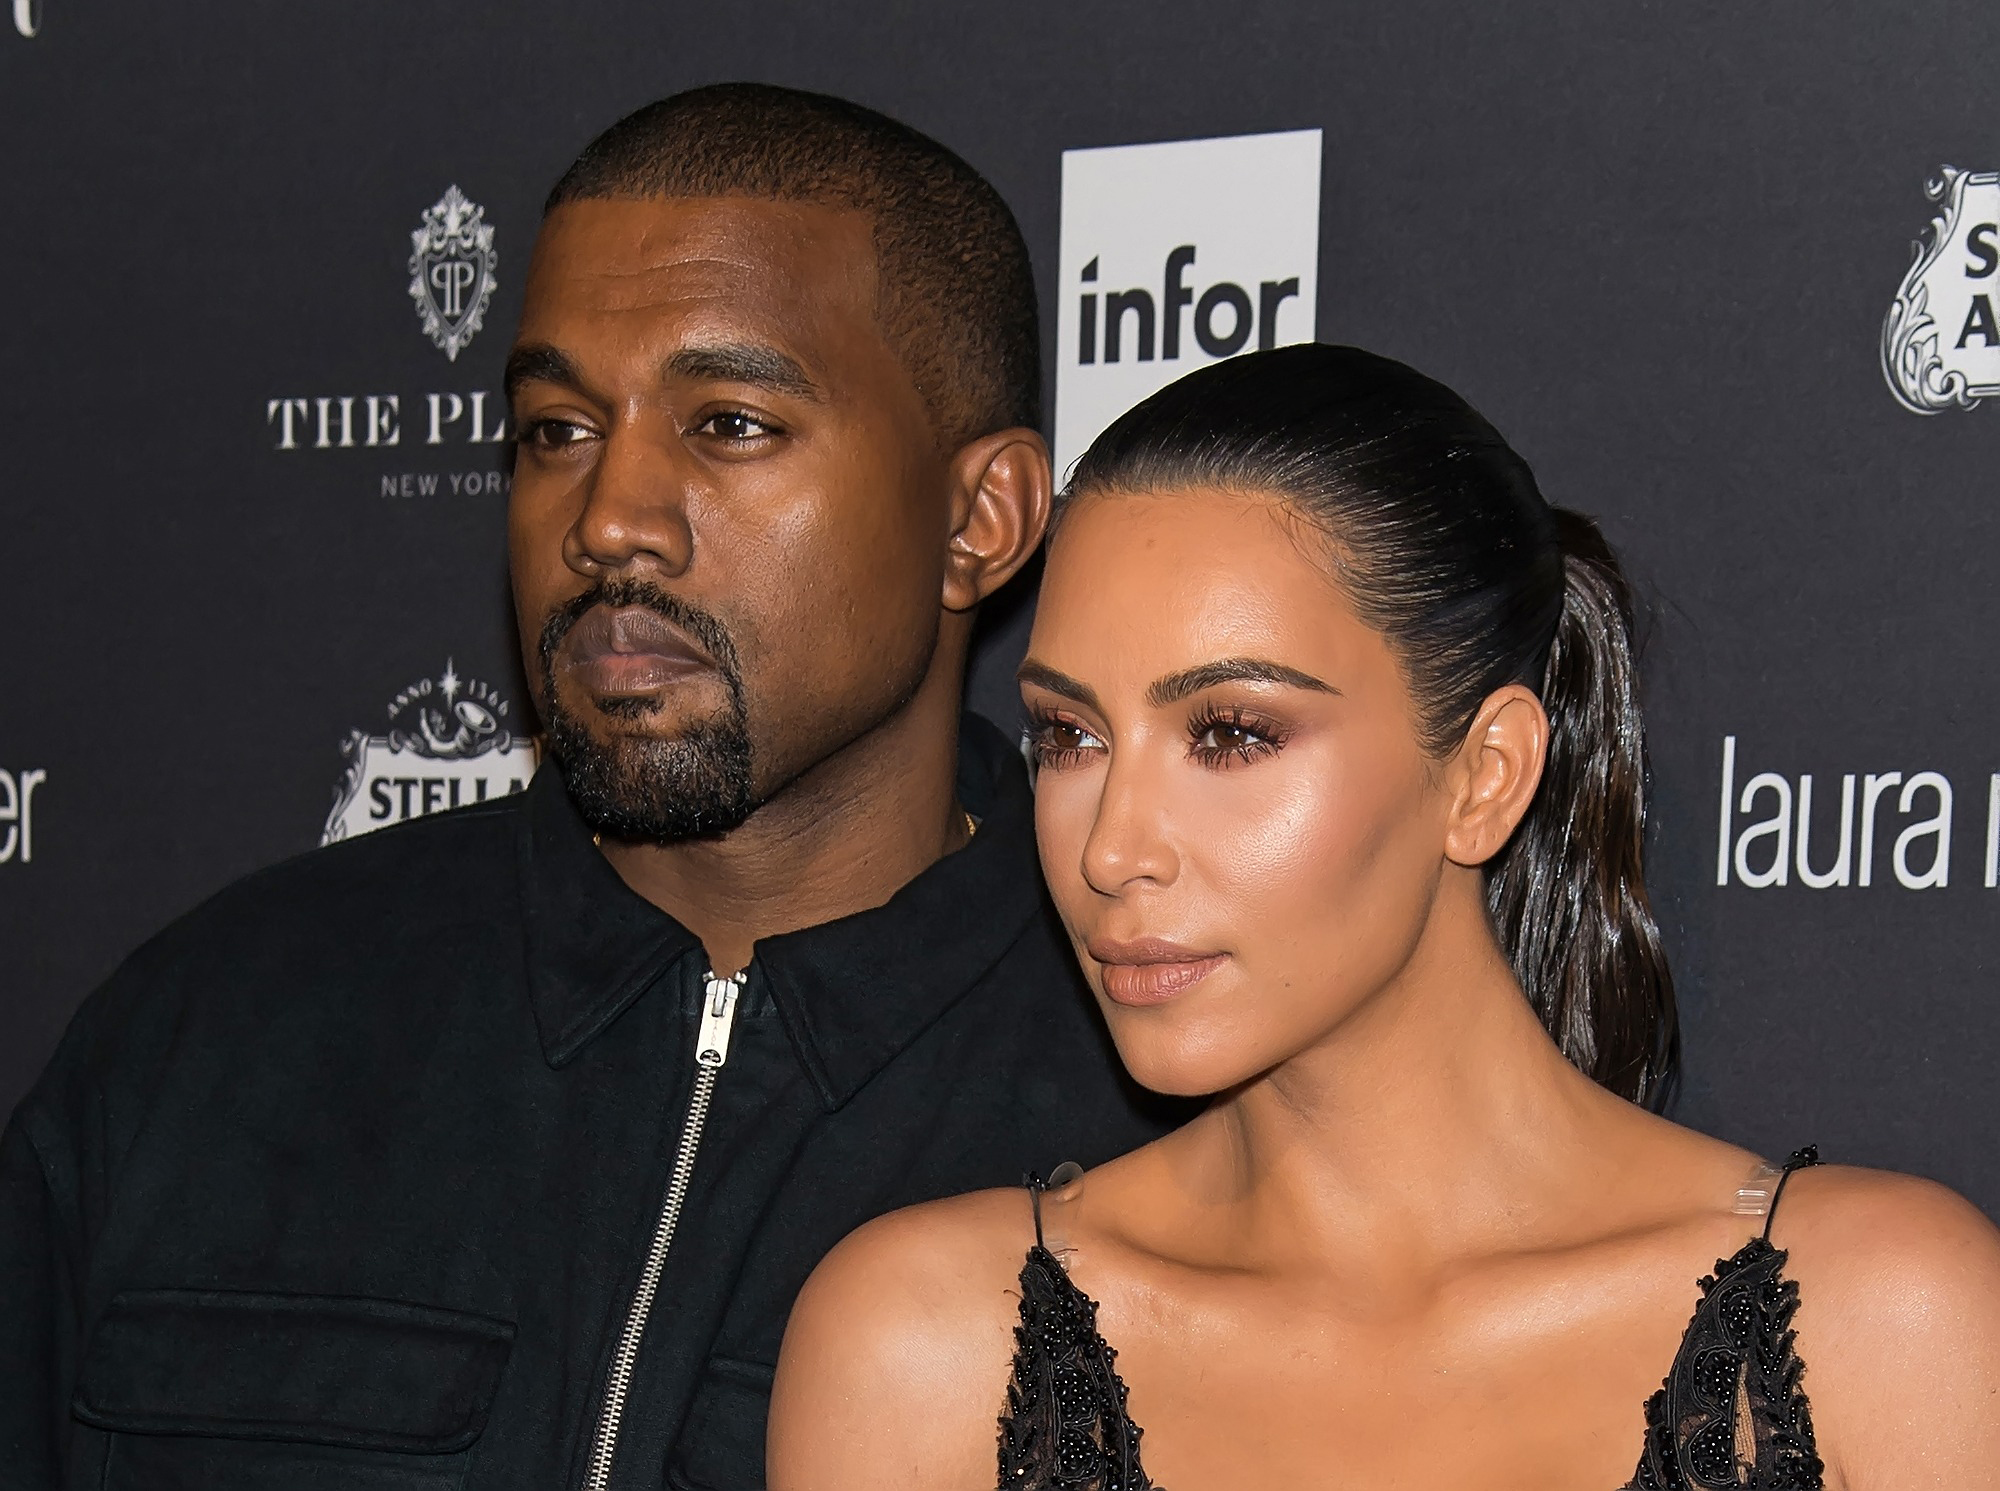 Kanye West and Kim Kardashian West attend Harper's BAZAAR Celebrates 'ICONS By Carine Roitfeld' at The Plaza Hotel on September 9, 2016 in New York City.  (Photo by Gilbert Carrasquillo/Getty Images)